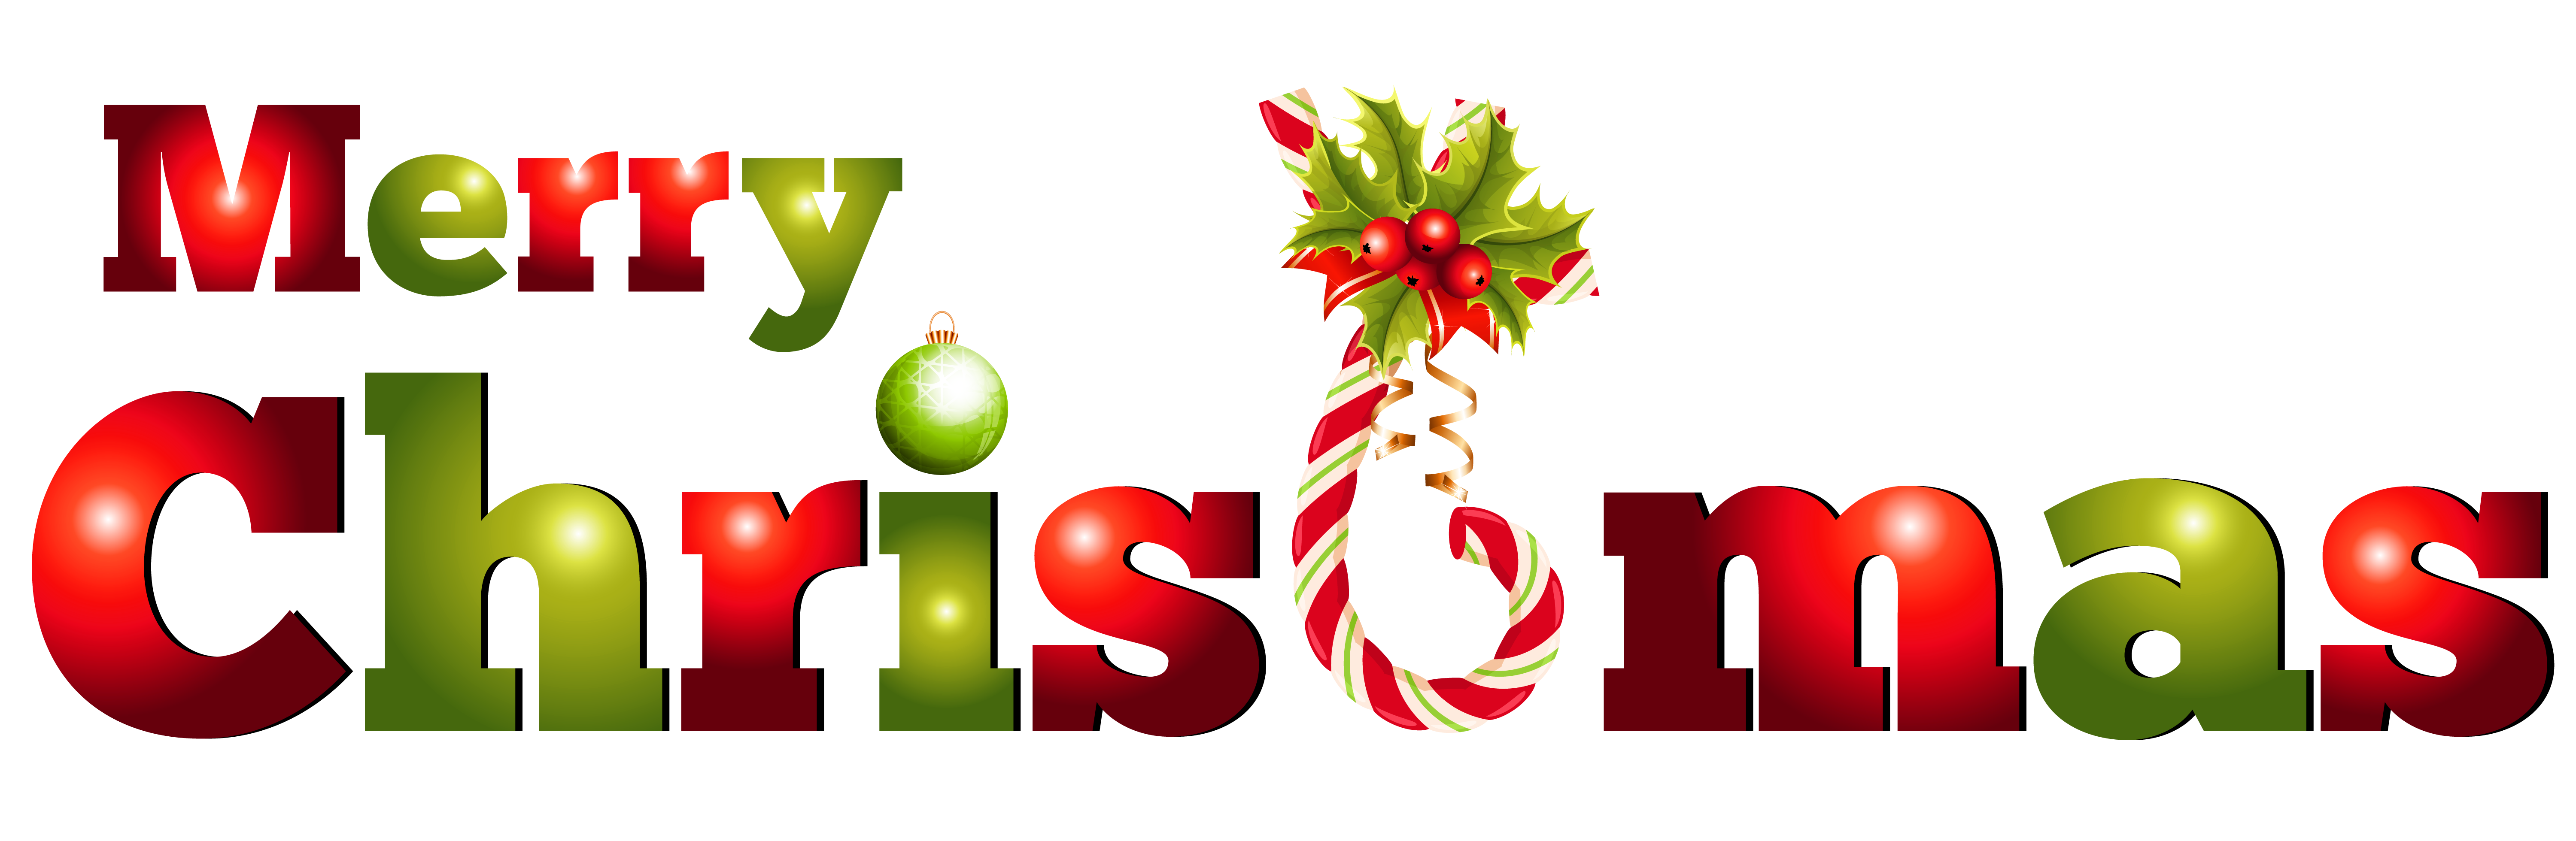 Merry Christmas Text.Download Merry Christmas Text Png Pic Hq Png Image Freepngimg